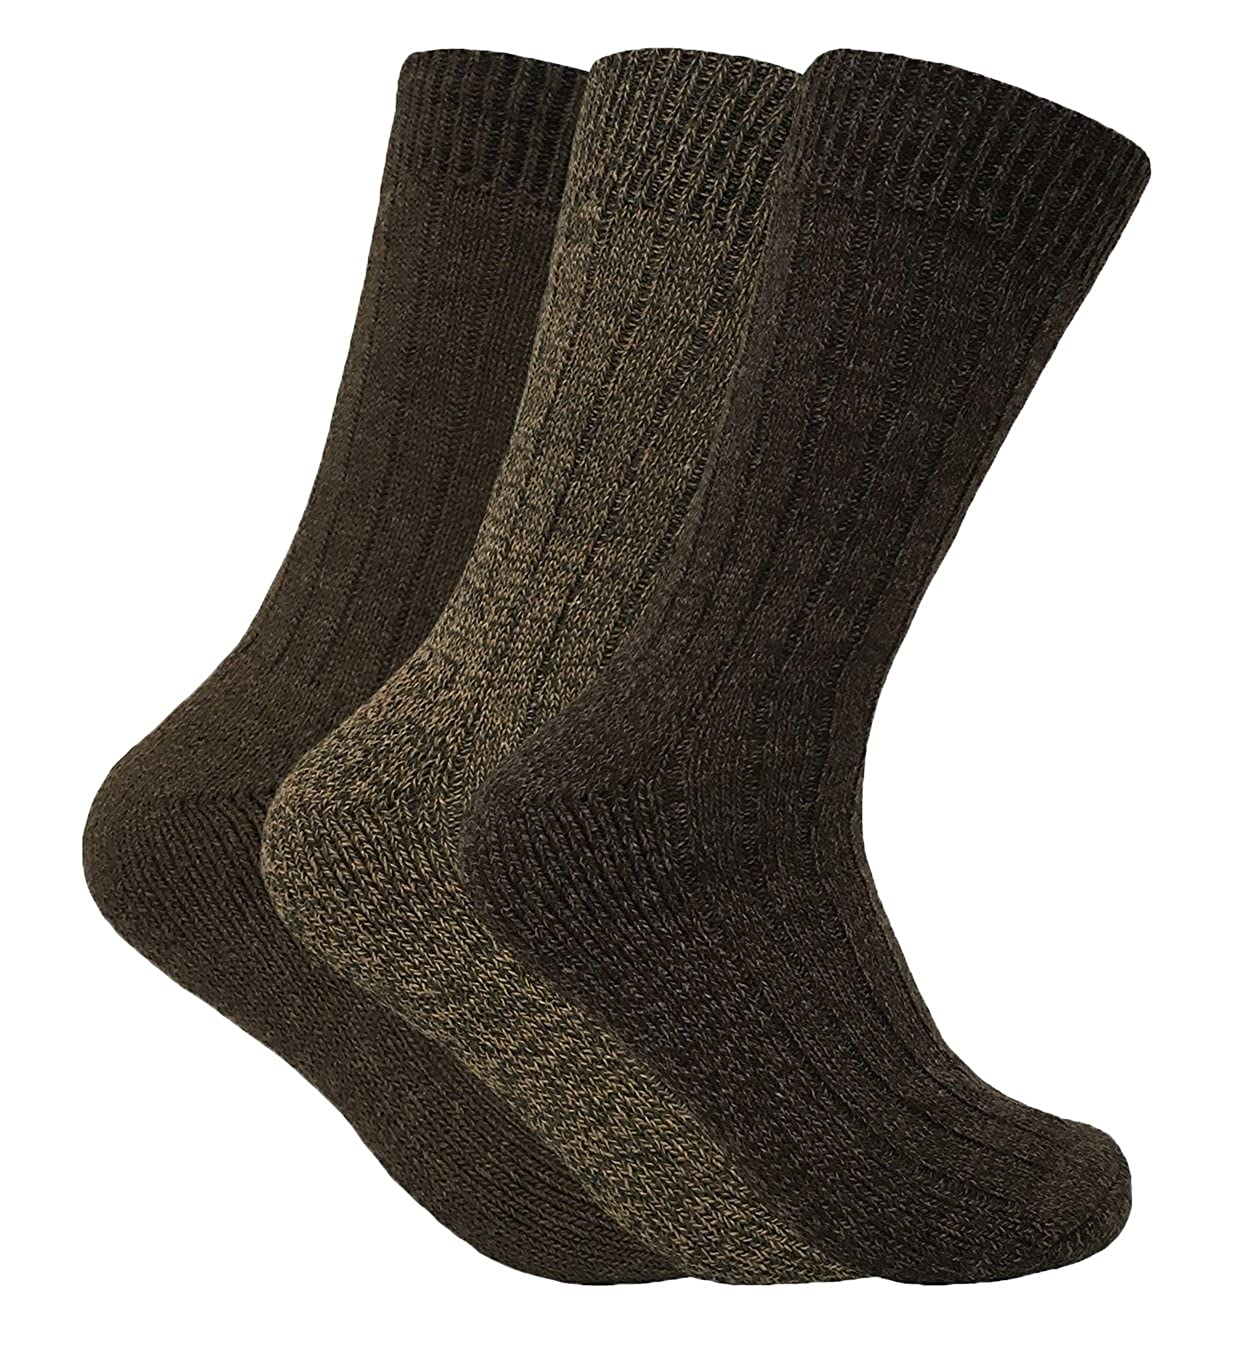 3 Pack Mens Wool Winter Warm Thick Breathable Cushioned Padded Hiking Socks WB Black) SKSNB